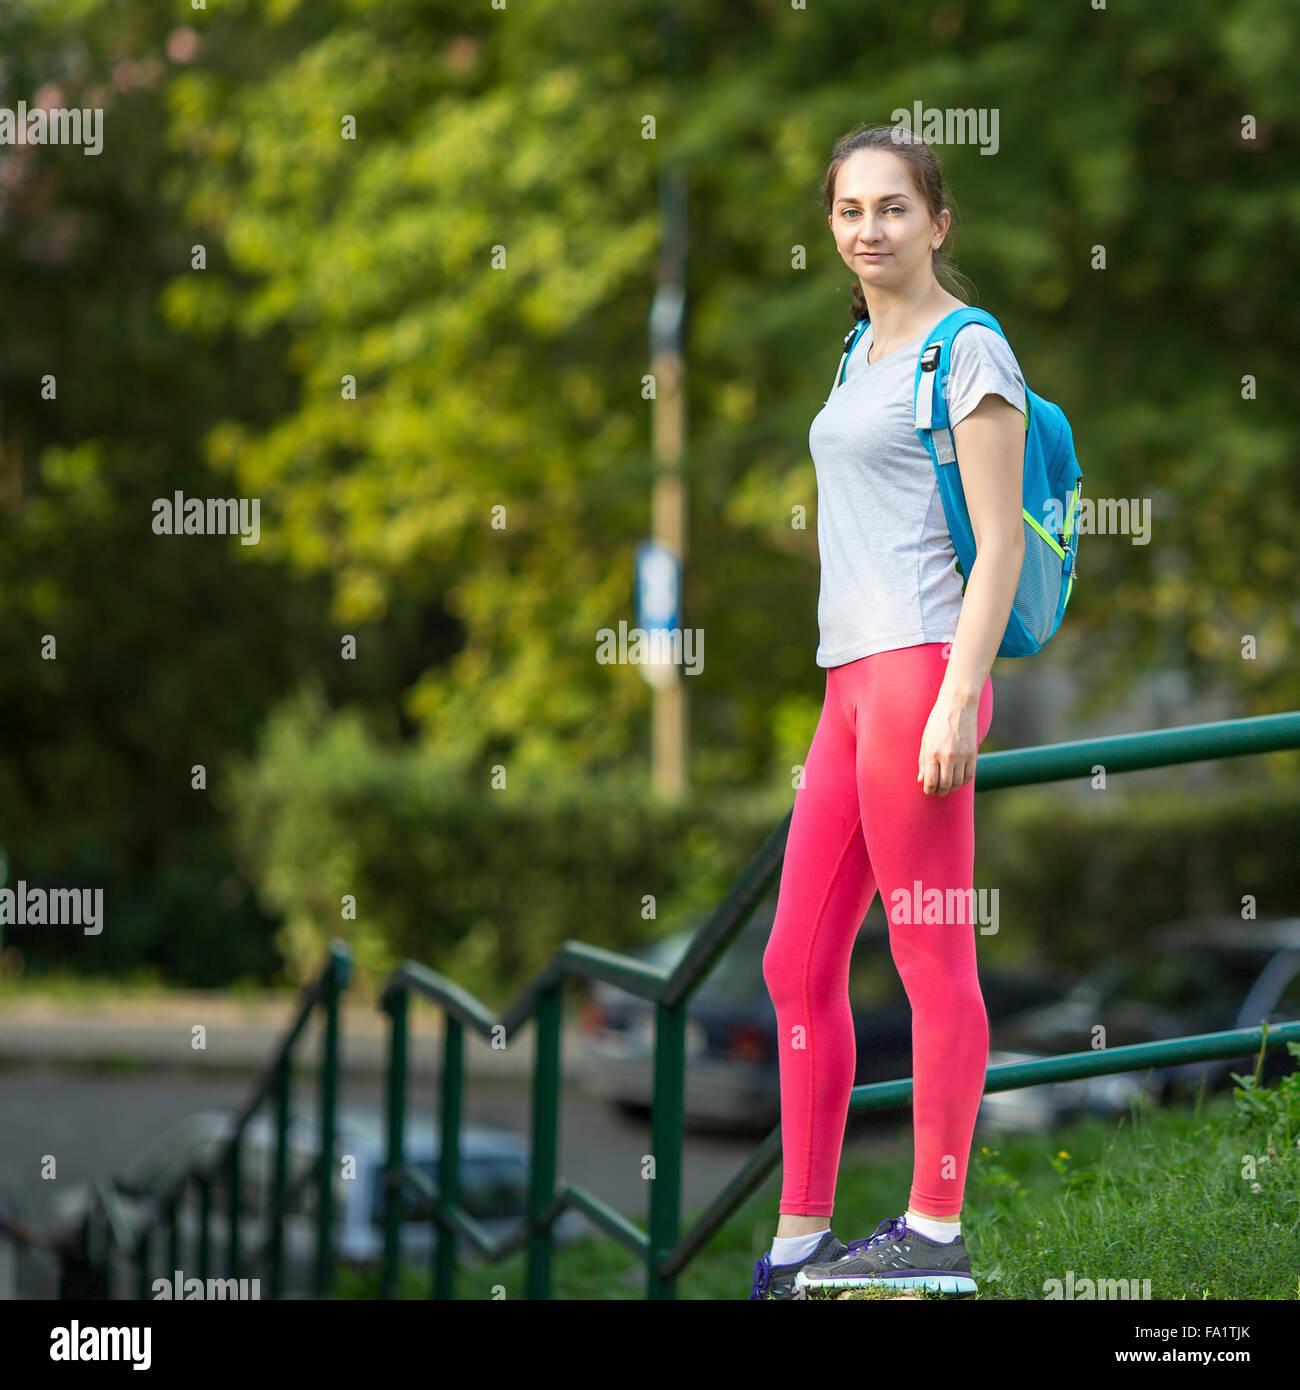 Young sporty girl outdoors before training. - Stock Image